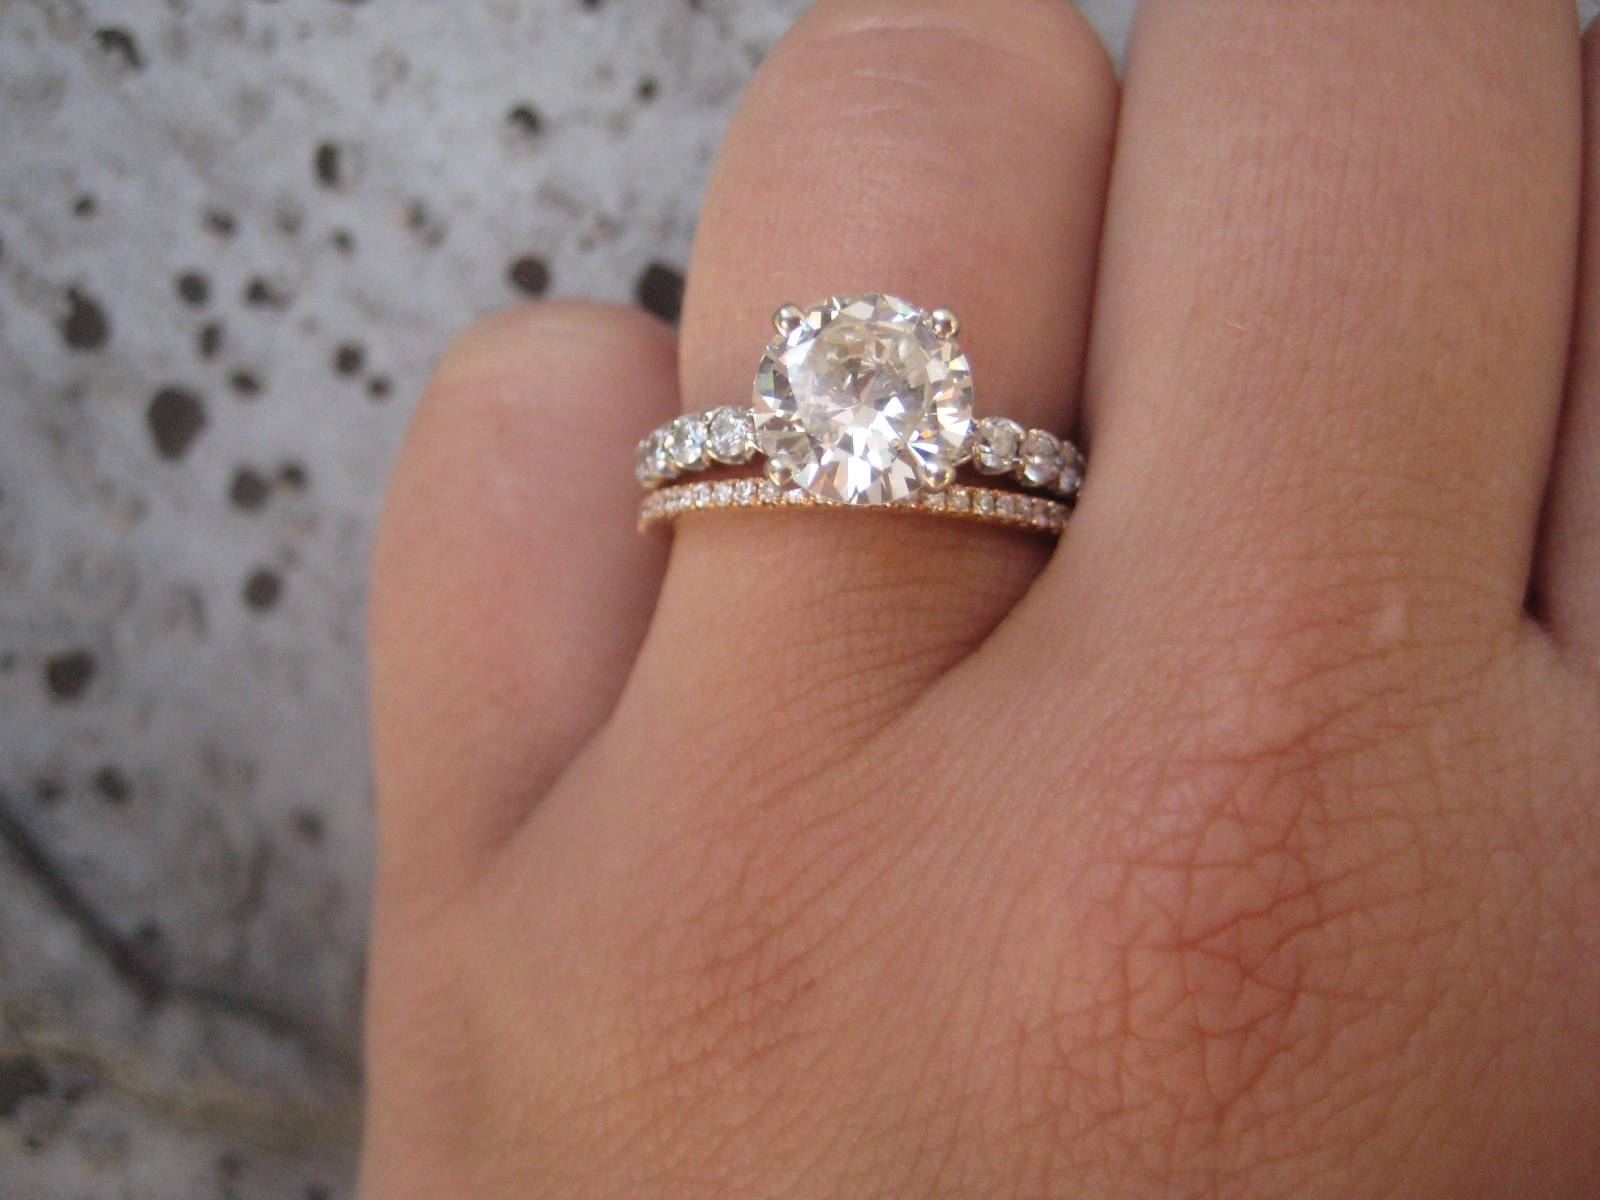 Super Thin Goldrose Gold Wedding Band Engagement Rings Silver Regarding Gold Wedding Bands With Silver Engagement Rings (View 10 of 15)